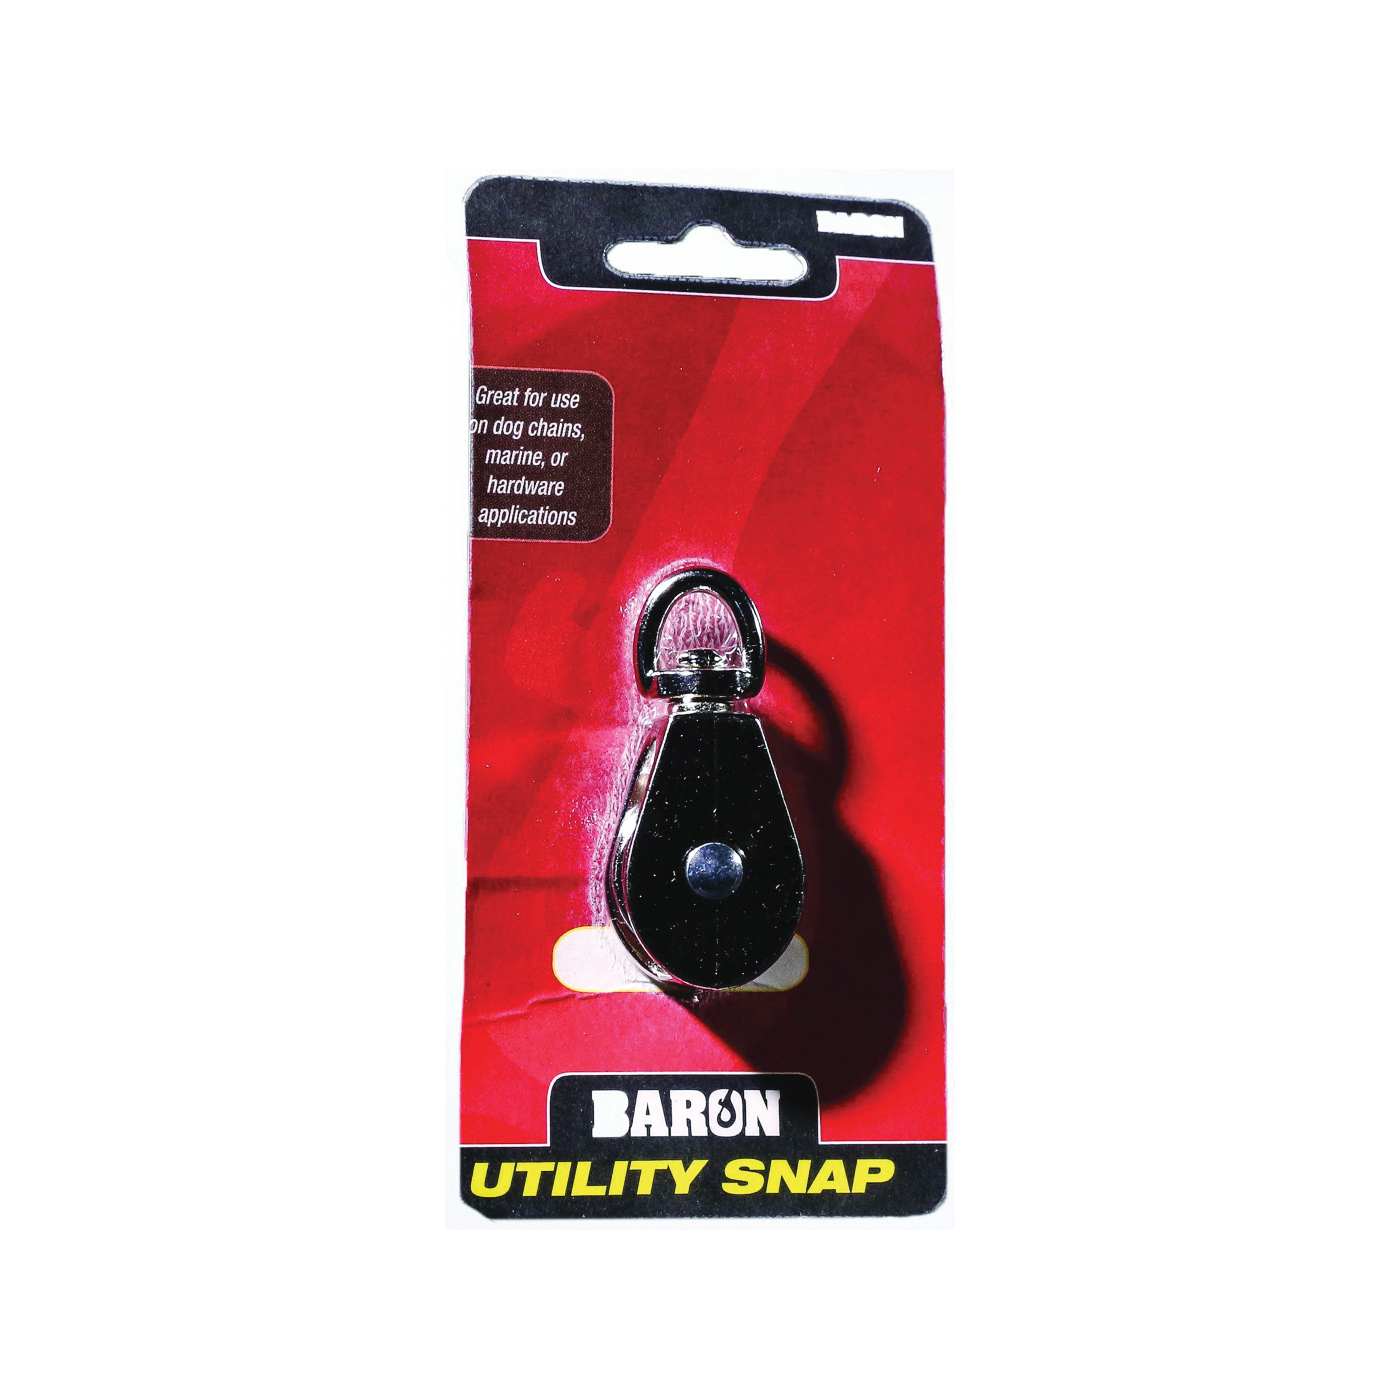 Picture of BARON C-0173ZD-3/4 Single Rope Pulley, 5/32 in Rope, 11.5 lb Working Load, 3/4 in Sheave, Nickel